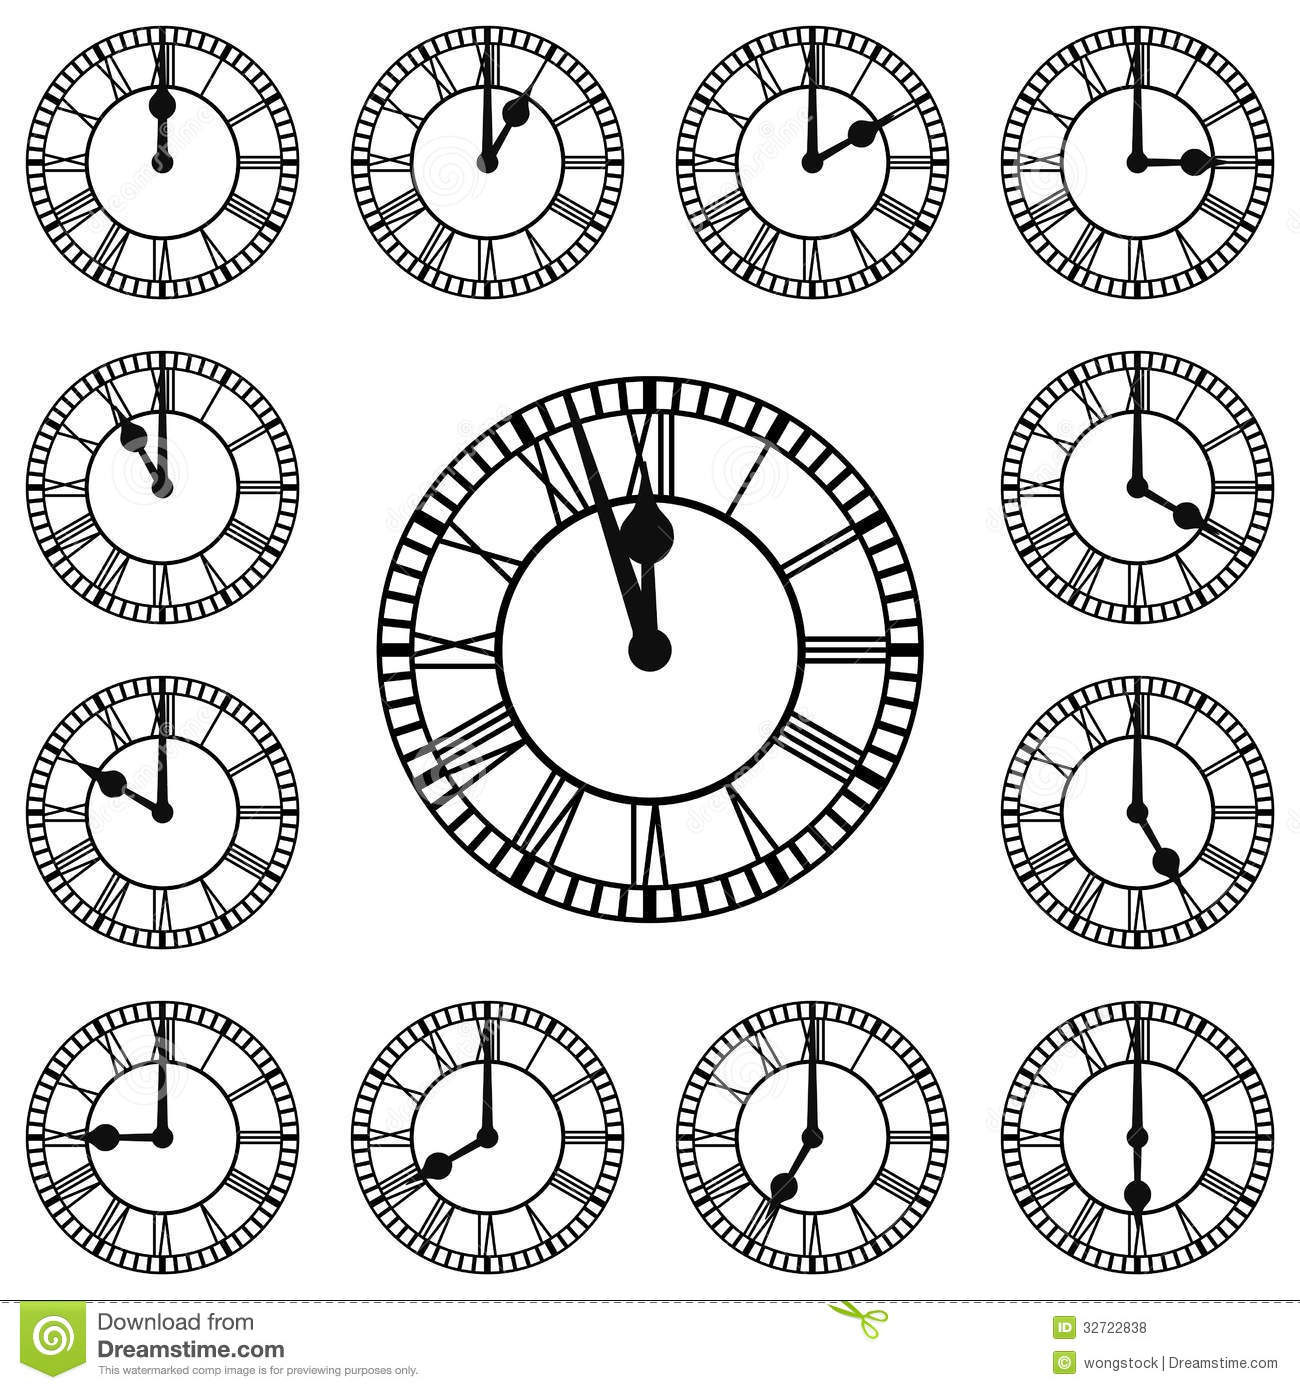 Roman Numeral Clocks Showing Every Hour Royalty Free Stock